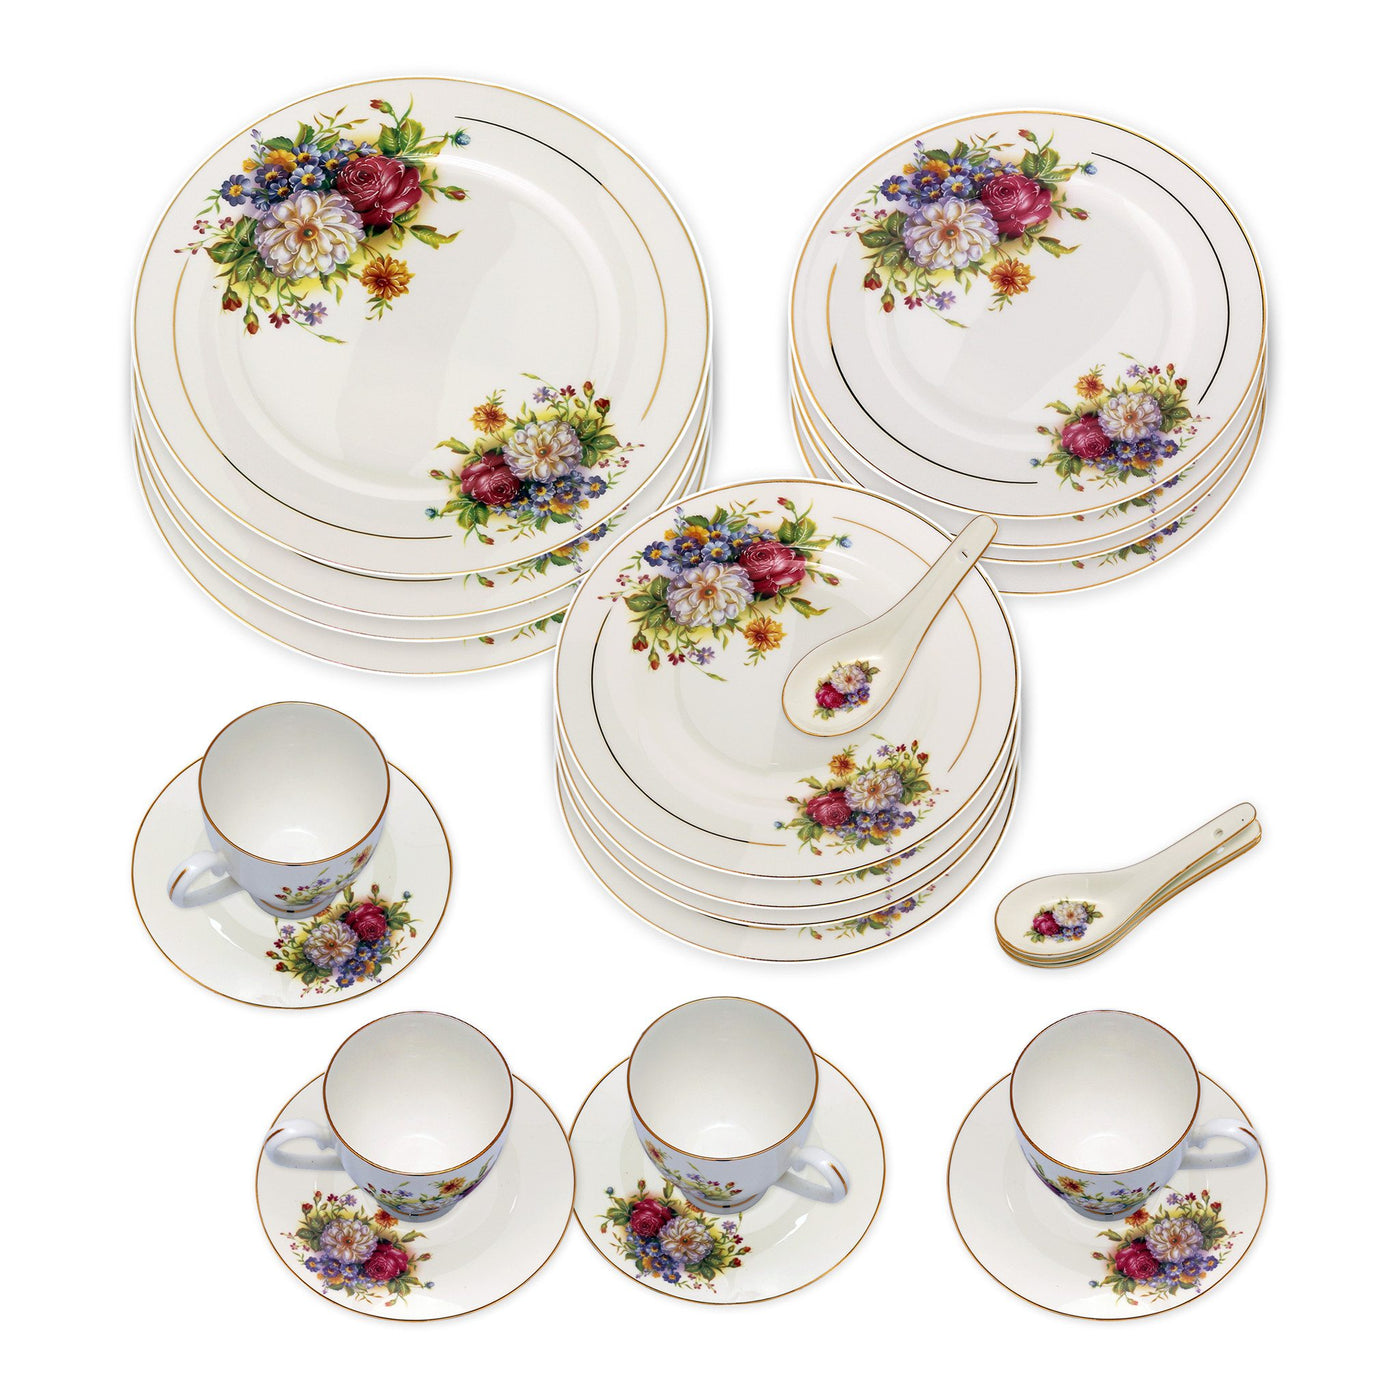 fine bone china dinnerware sets 24 piece service for 4 in floral pai homenique. Black Bedroom Furniture Sets. Home Design Ideas